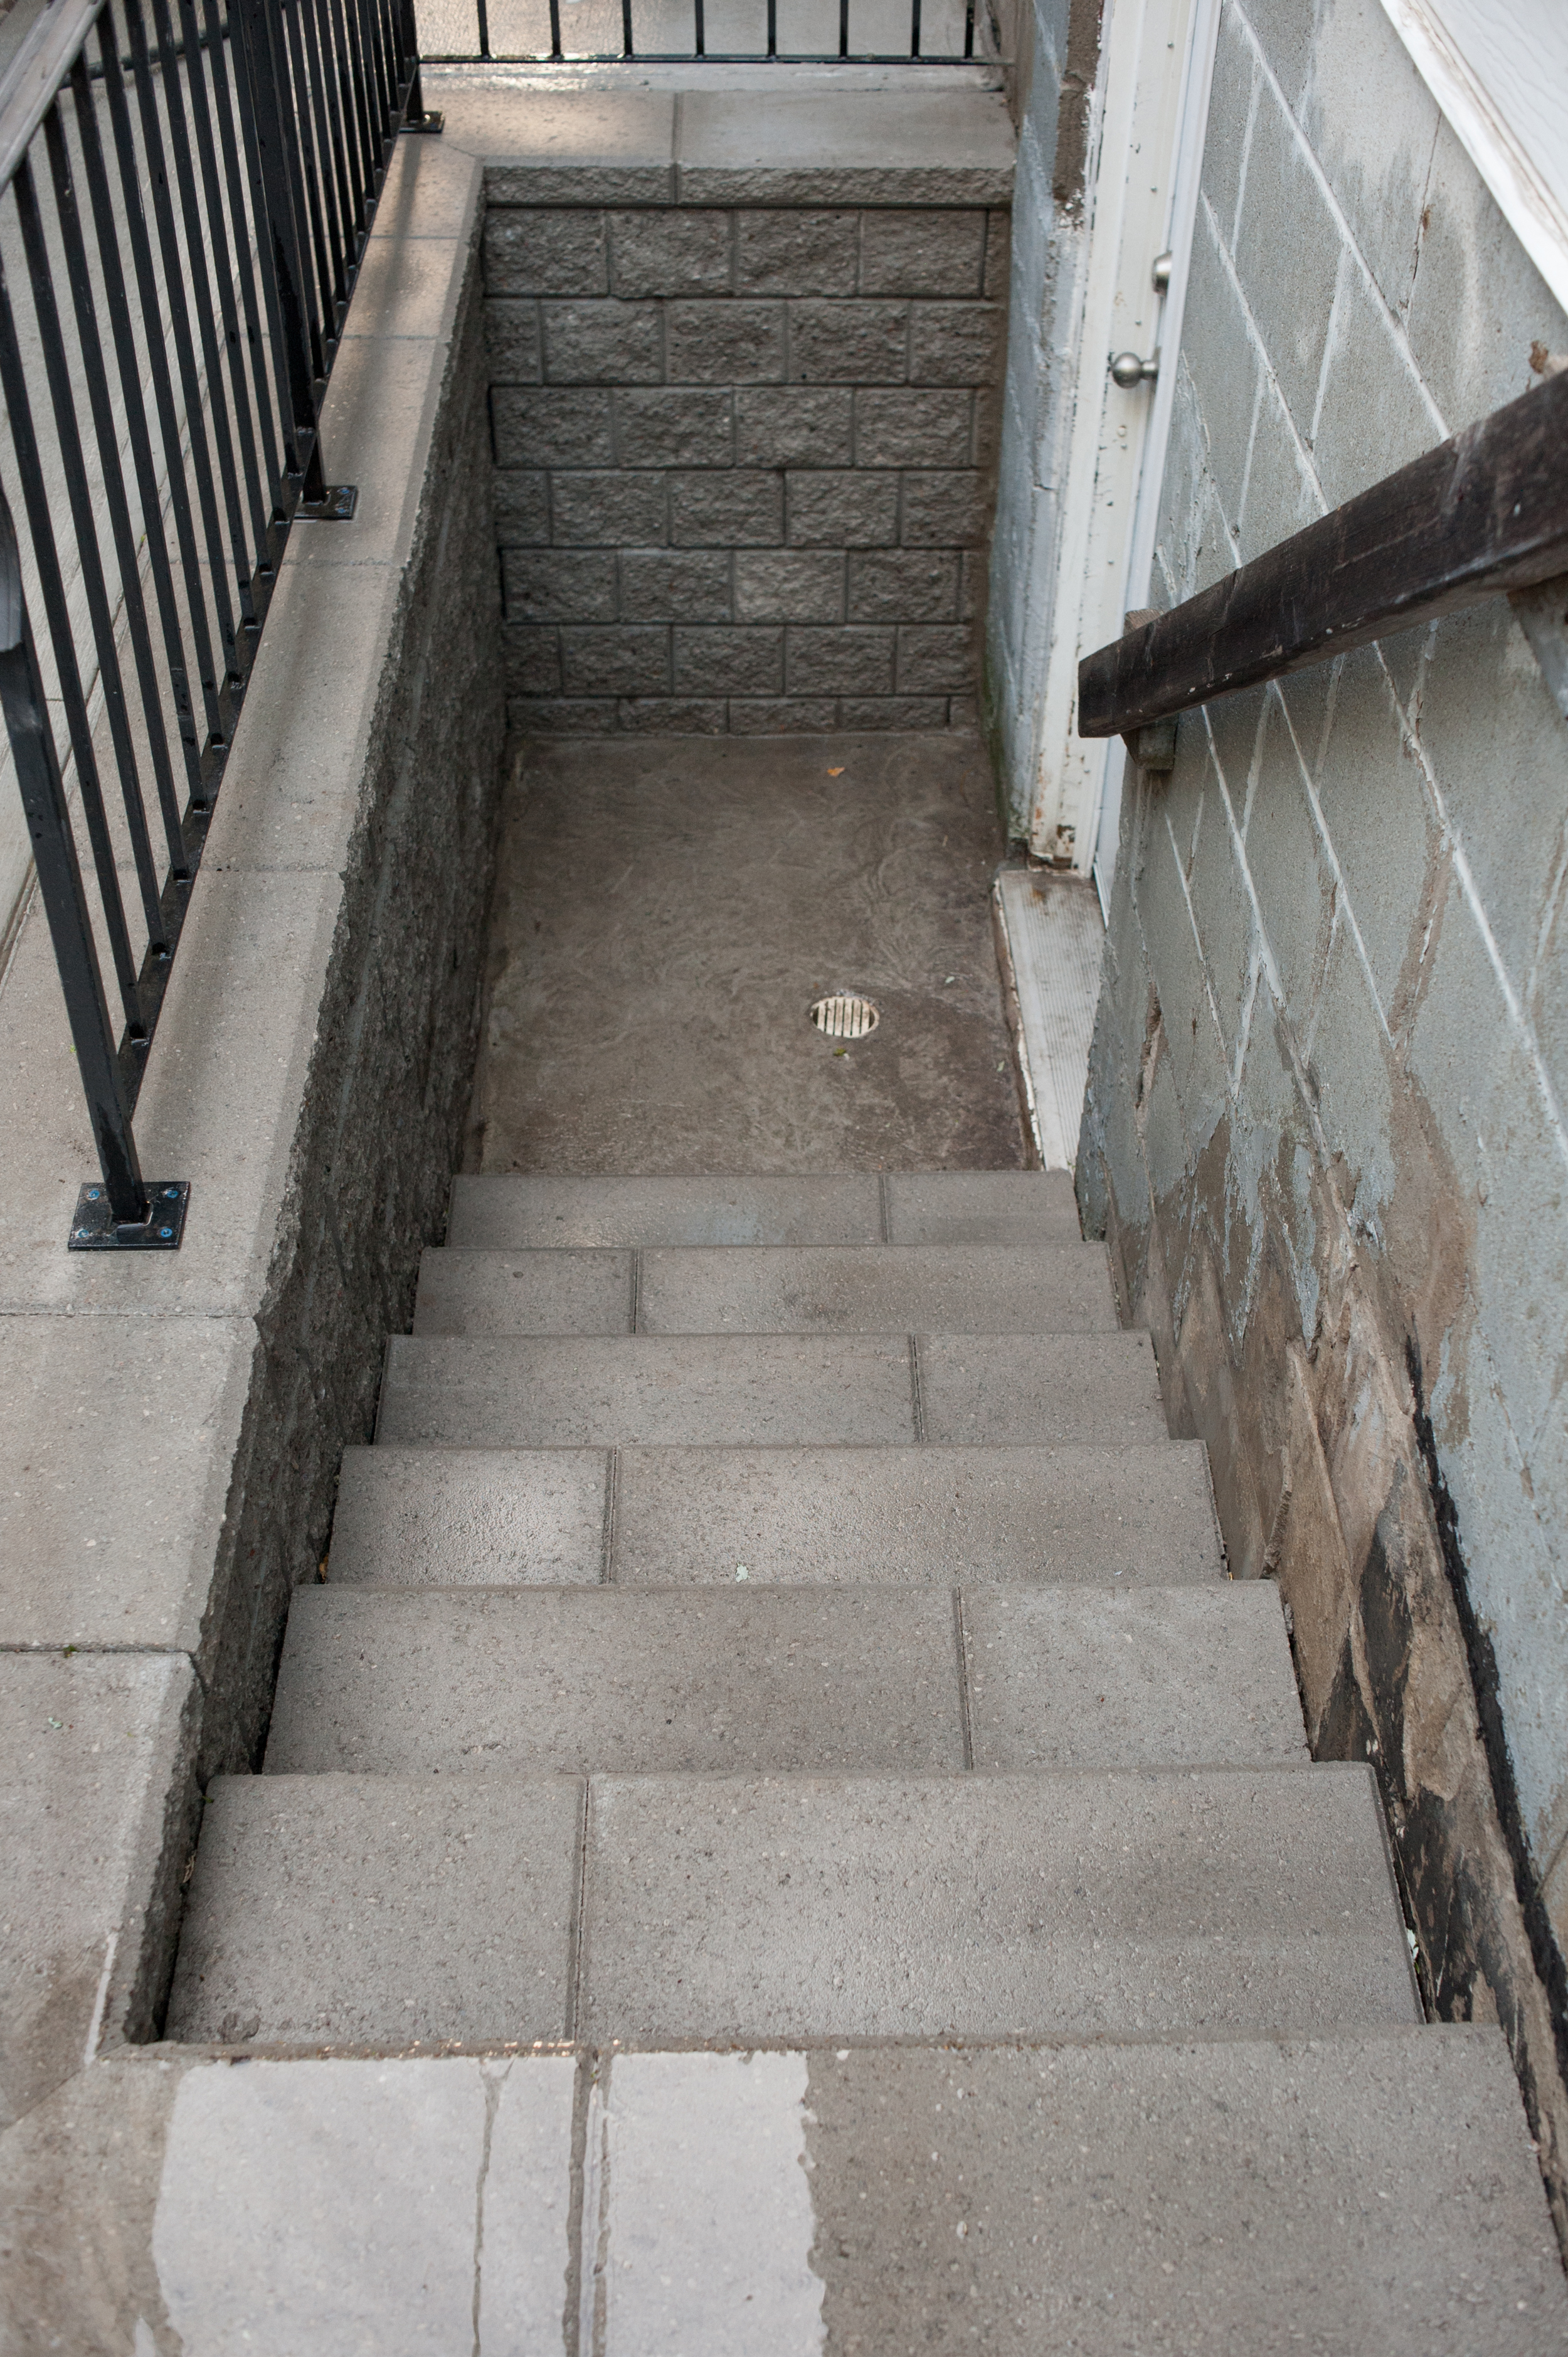 New (and much safer) steps to the basement using Unilock Pisa II retaining wall blocks.